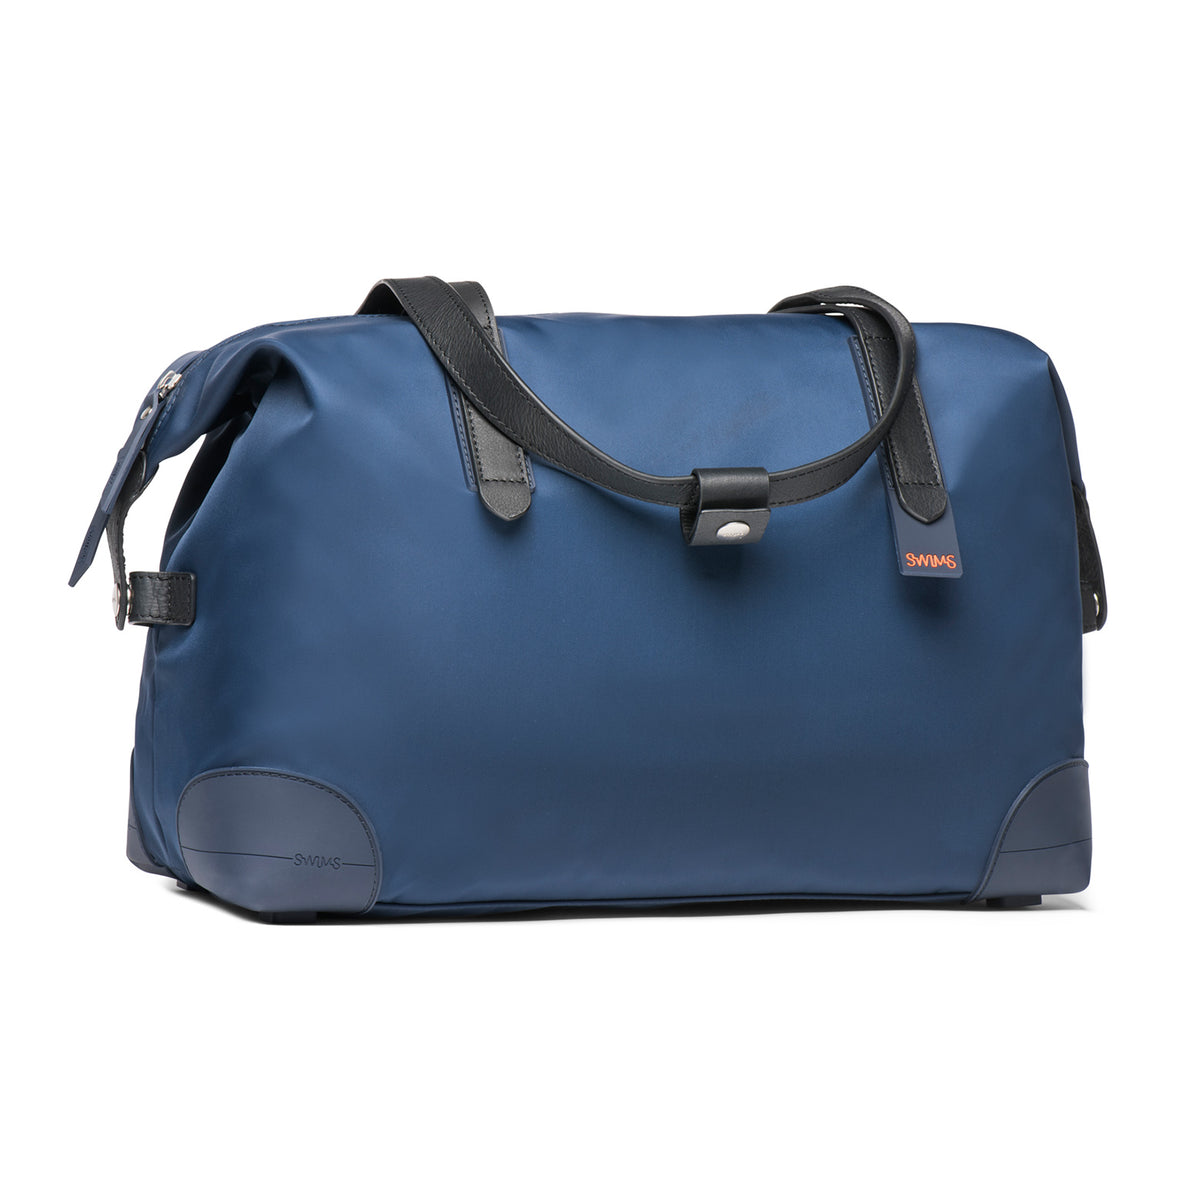 24H Holdall - background::white,variant::Navy